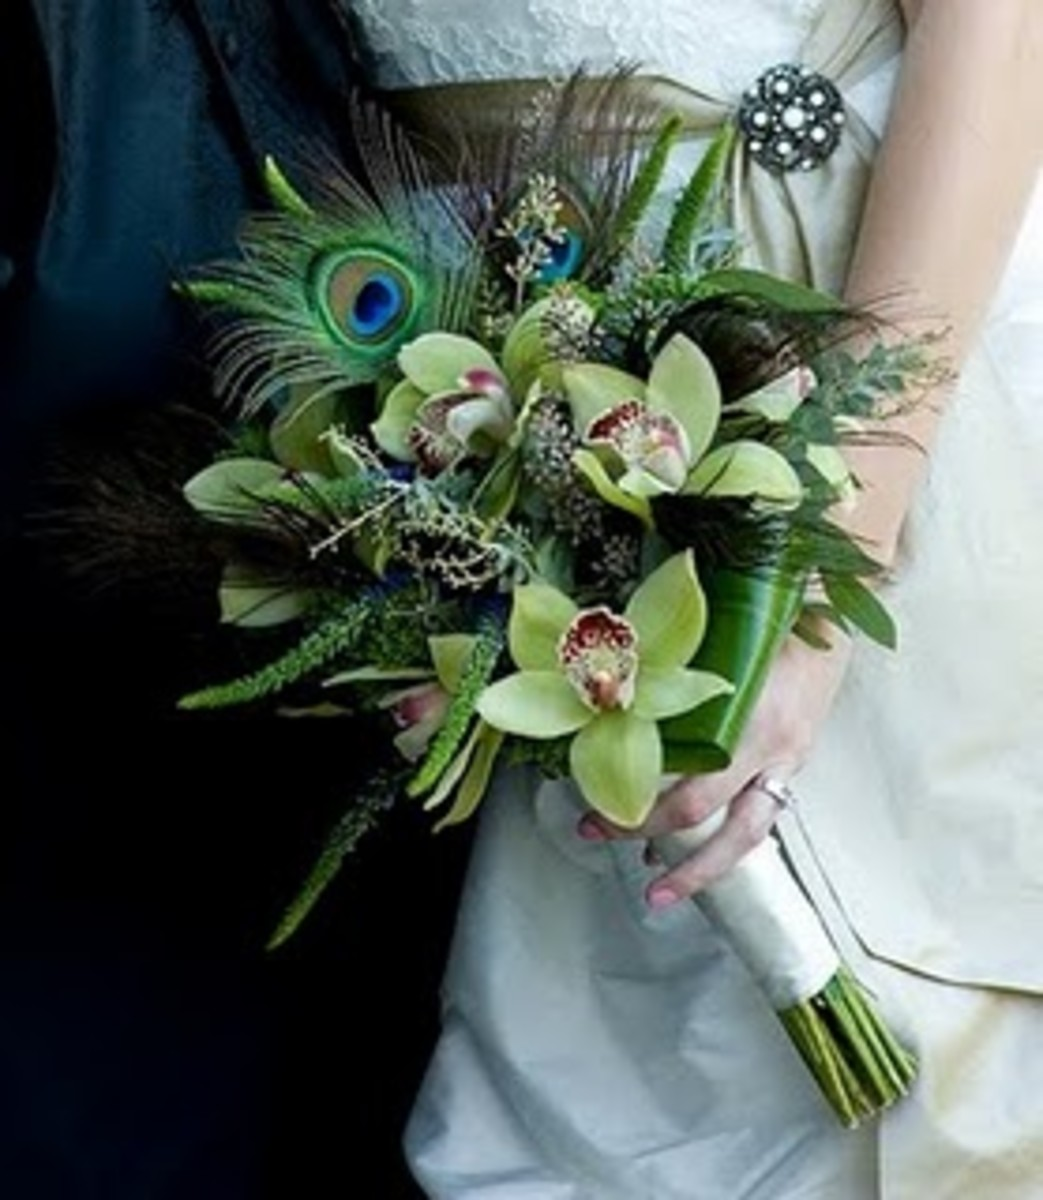 Peacock Feather Wedding Bouquets and Floral/Flower Arrangements - How To Make Your Own!